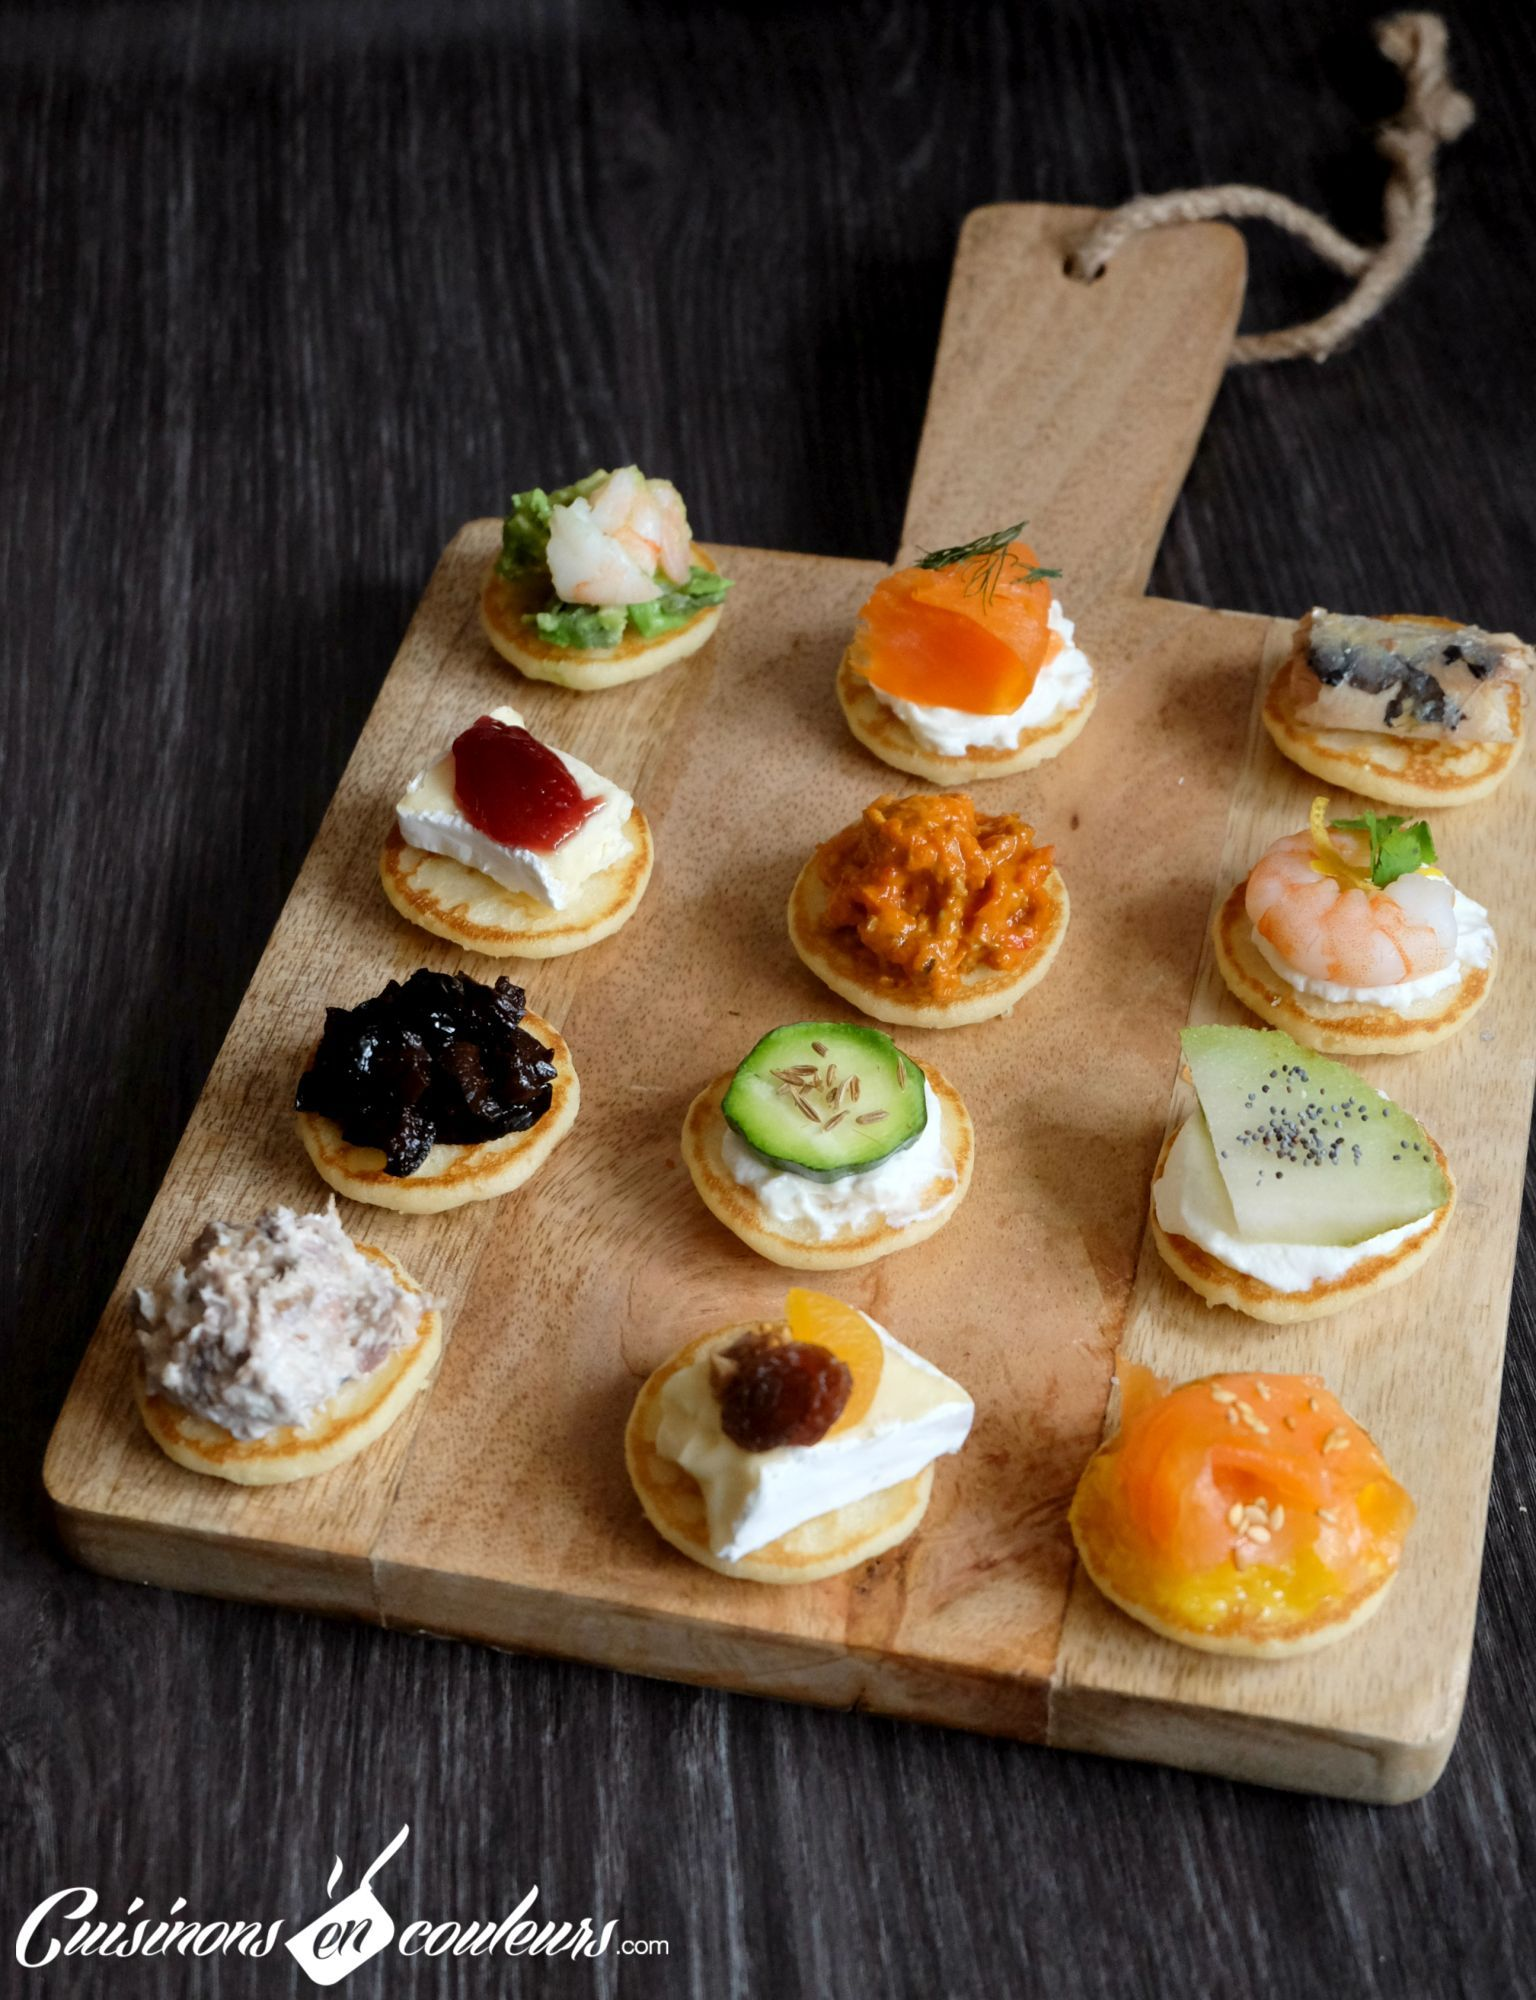 12 id es de garnitures pour vos blinis party finger food aperitif appetizers appetisers. Black Bedroom Furniture Sets. Home Design Ideas